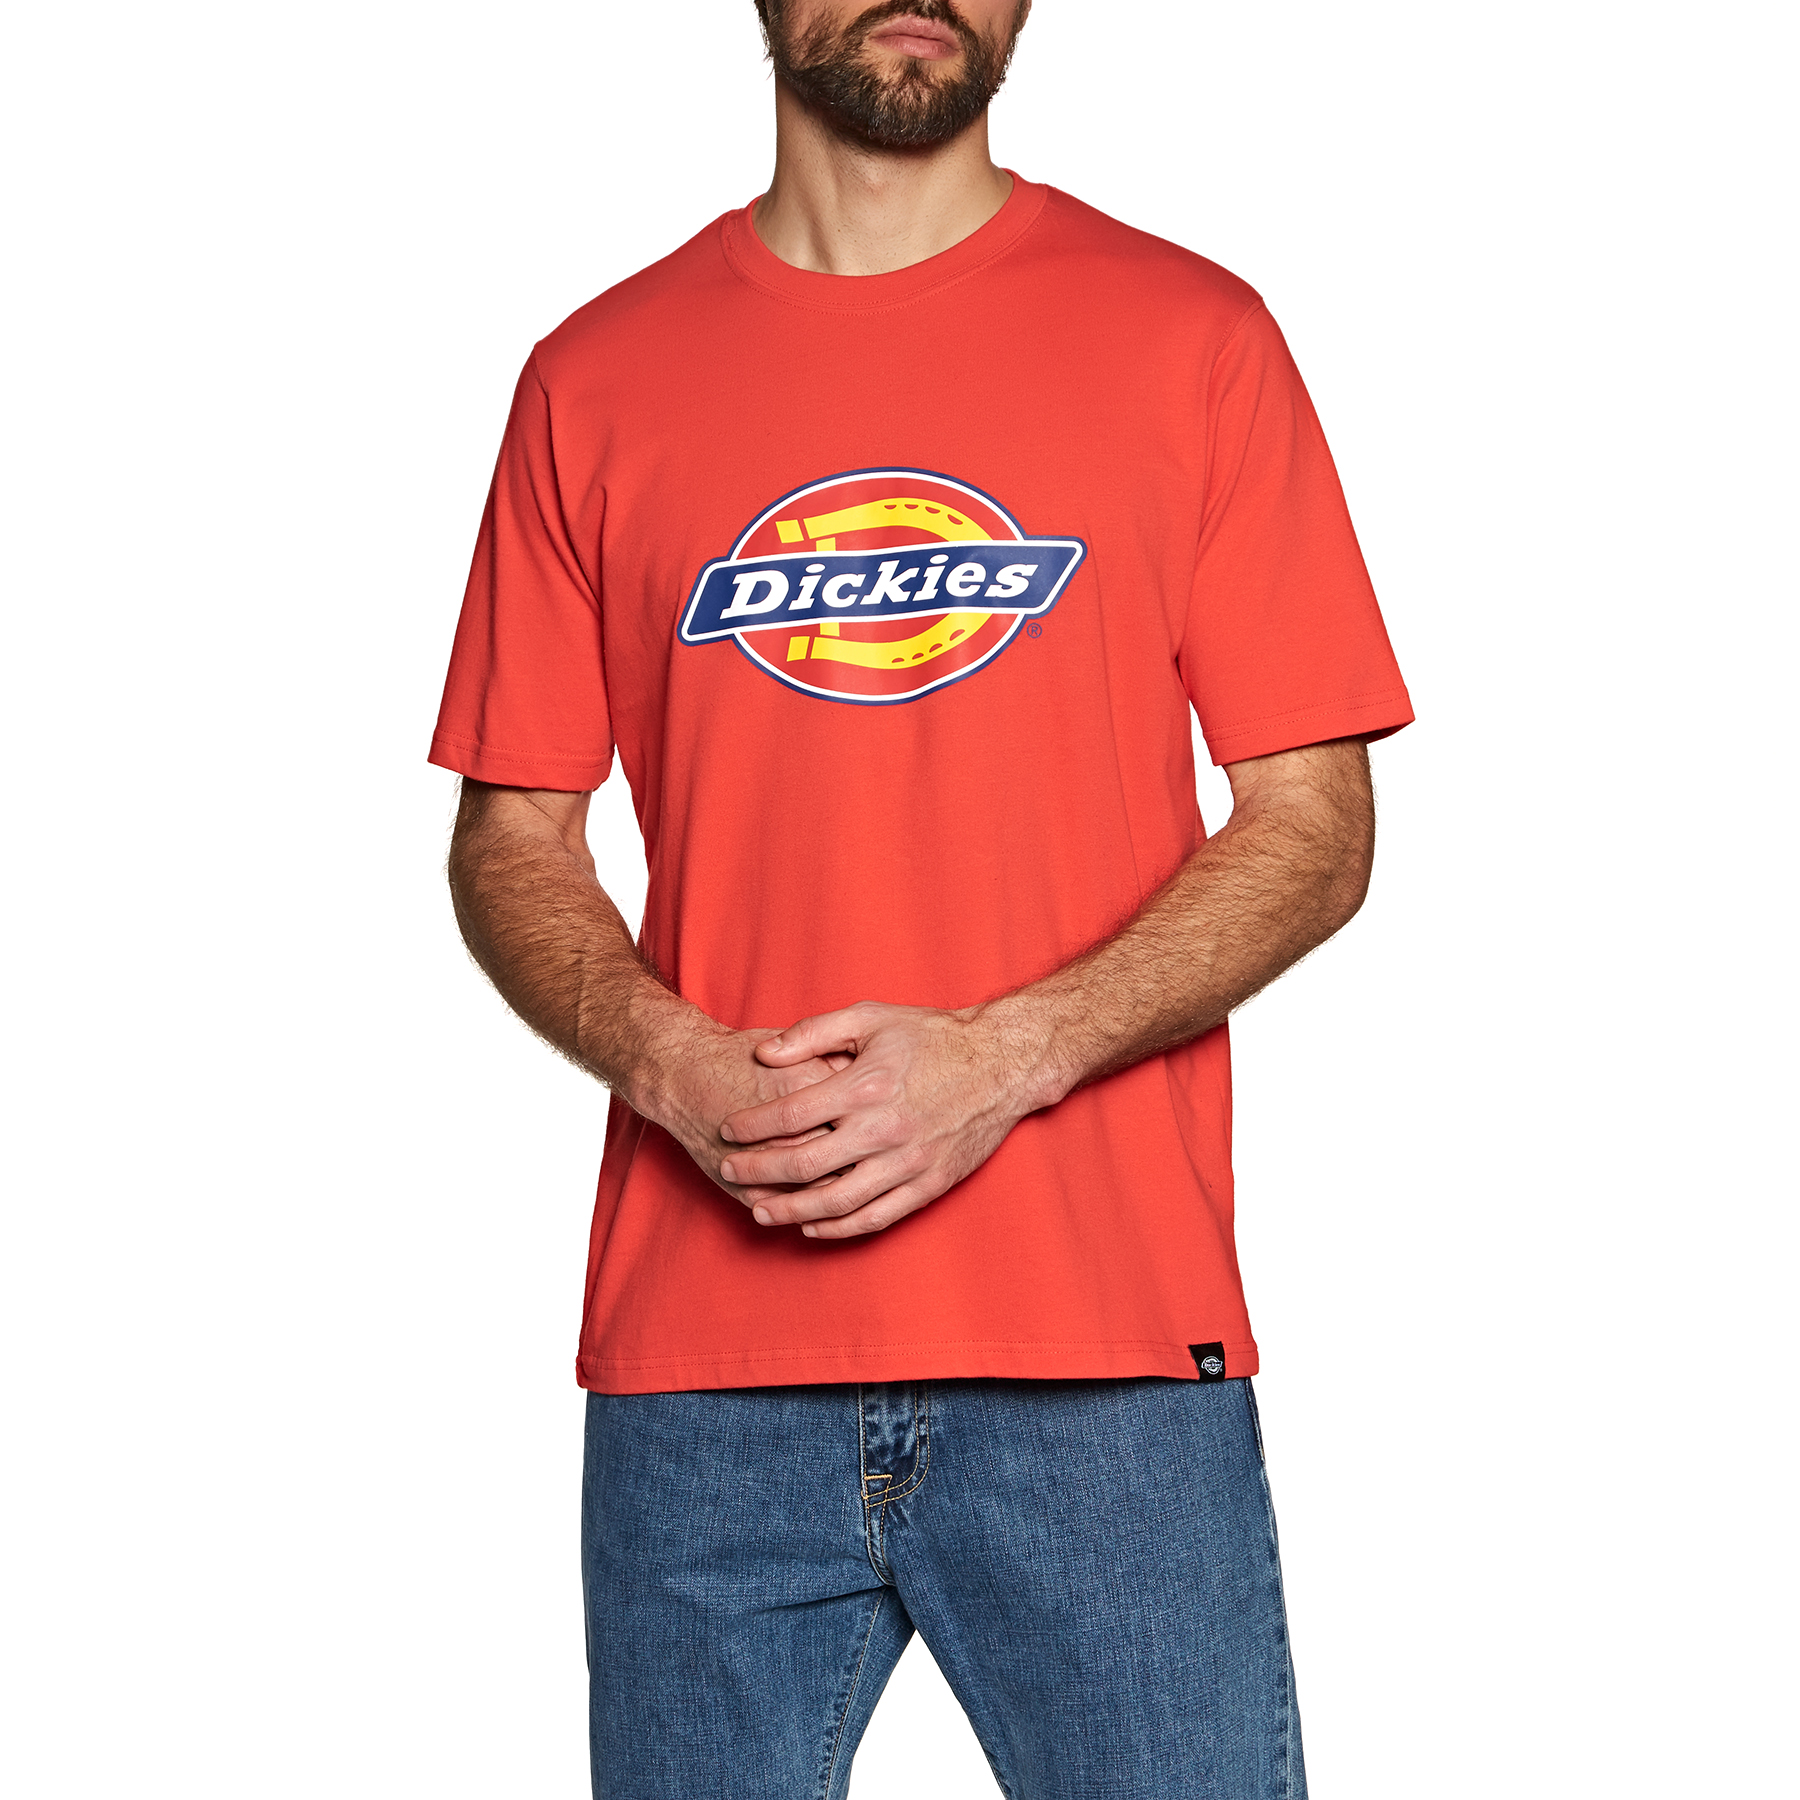 Dickies available from Blackleaf